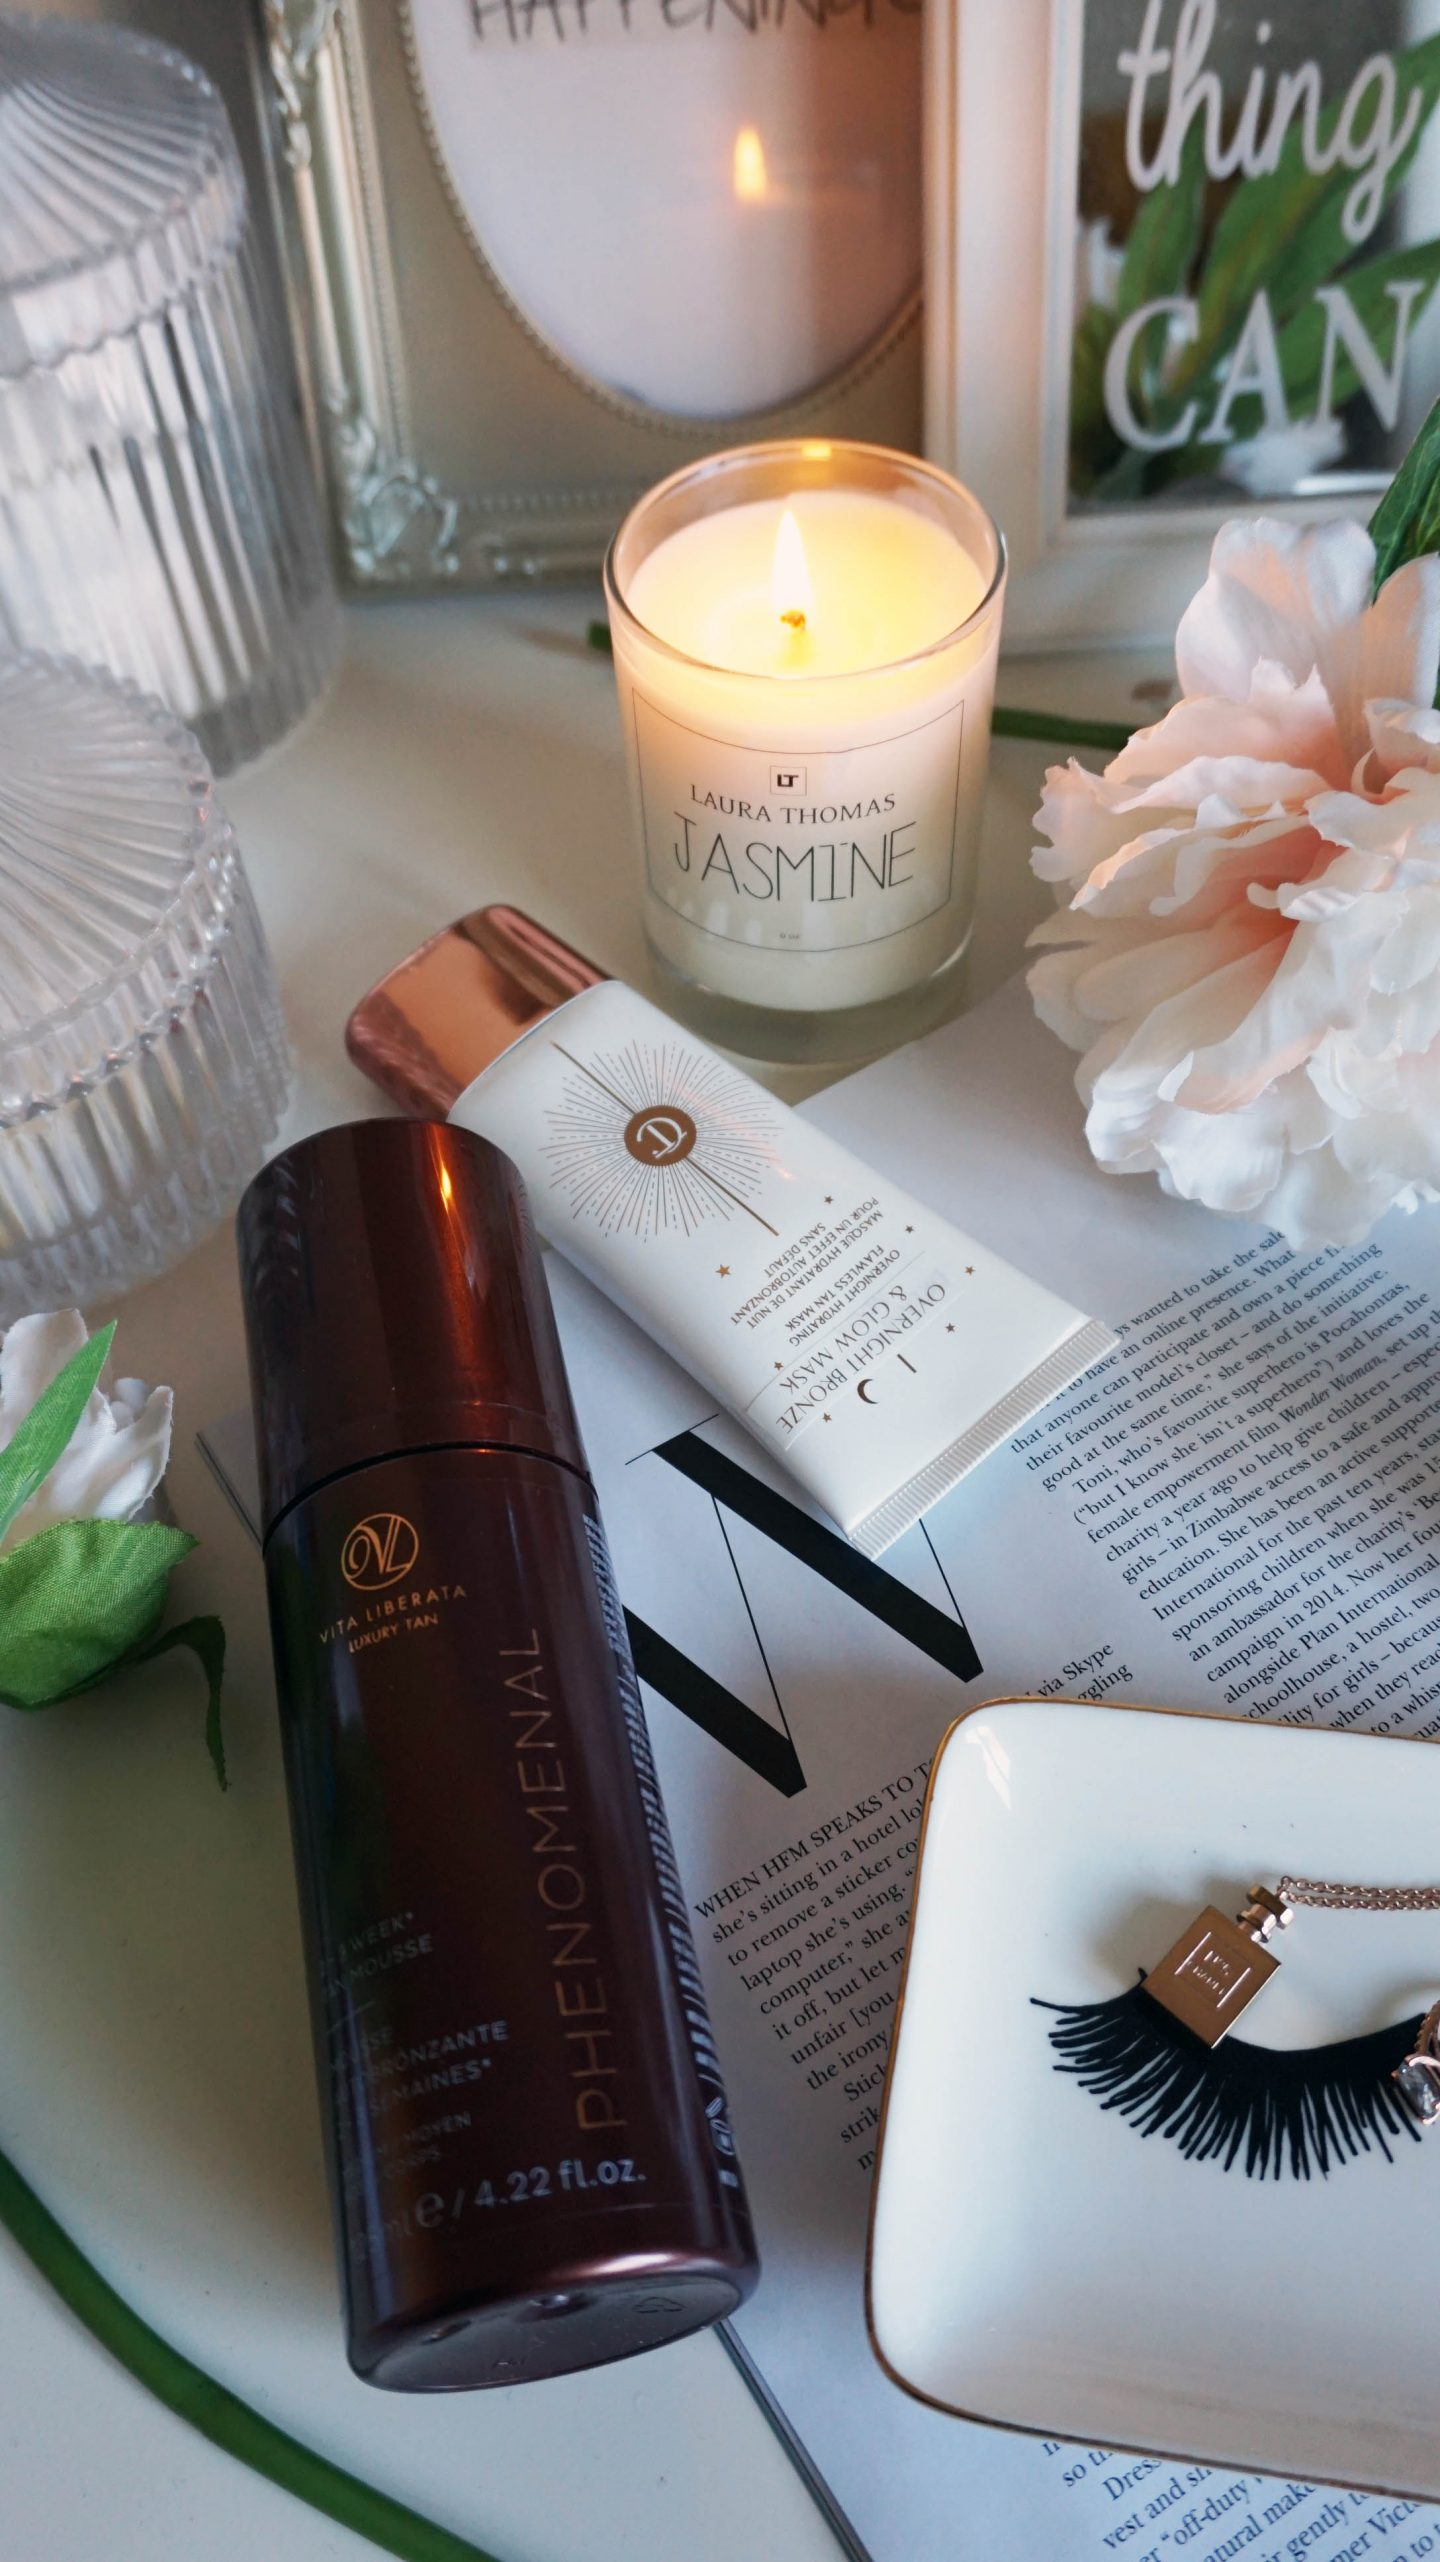 MY AUTUMN BEAUTY PICKS AND WHY PAMPERING IS IMPORTANT